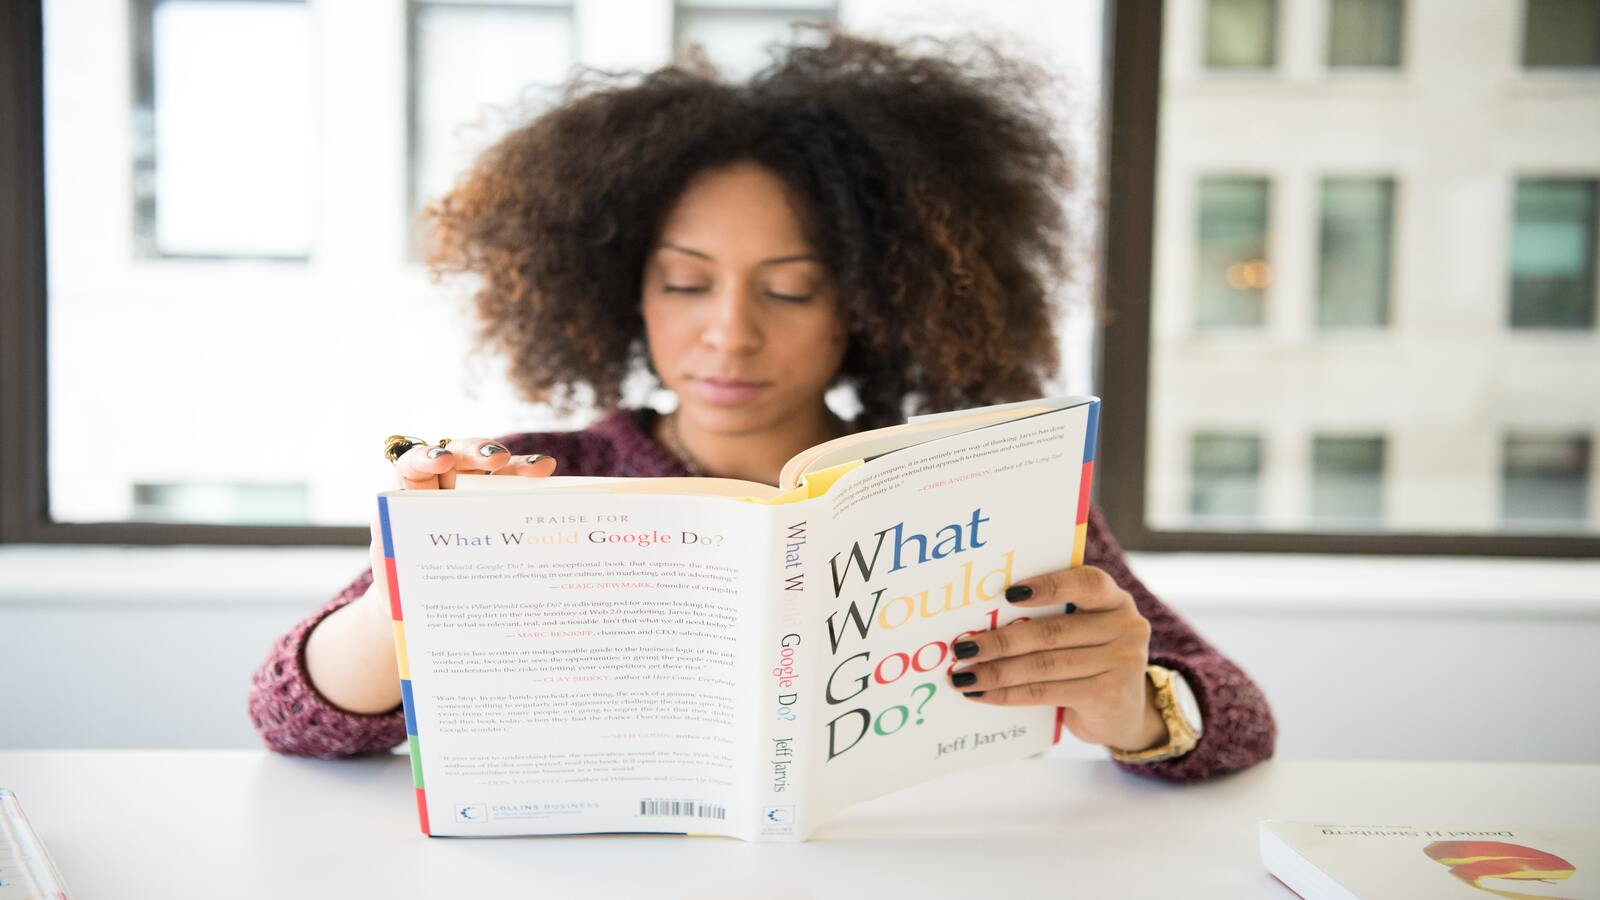 What Are Good Books to Learn C1/C2 English?